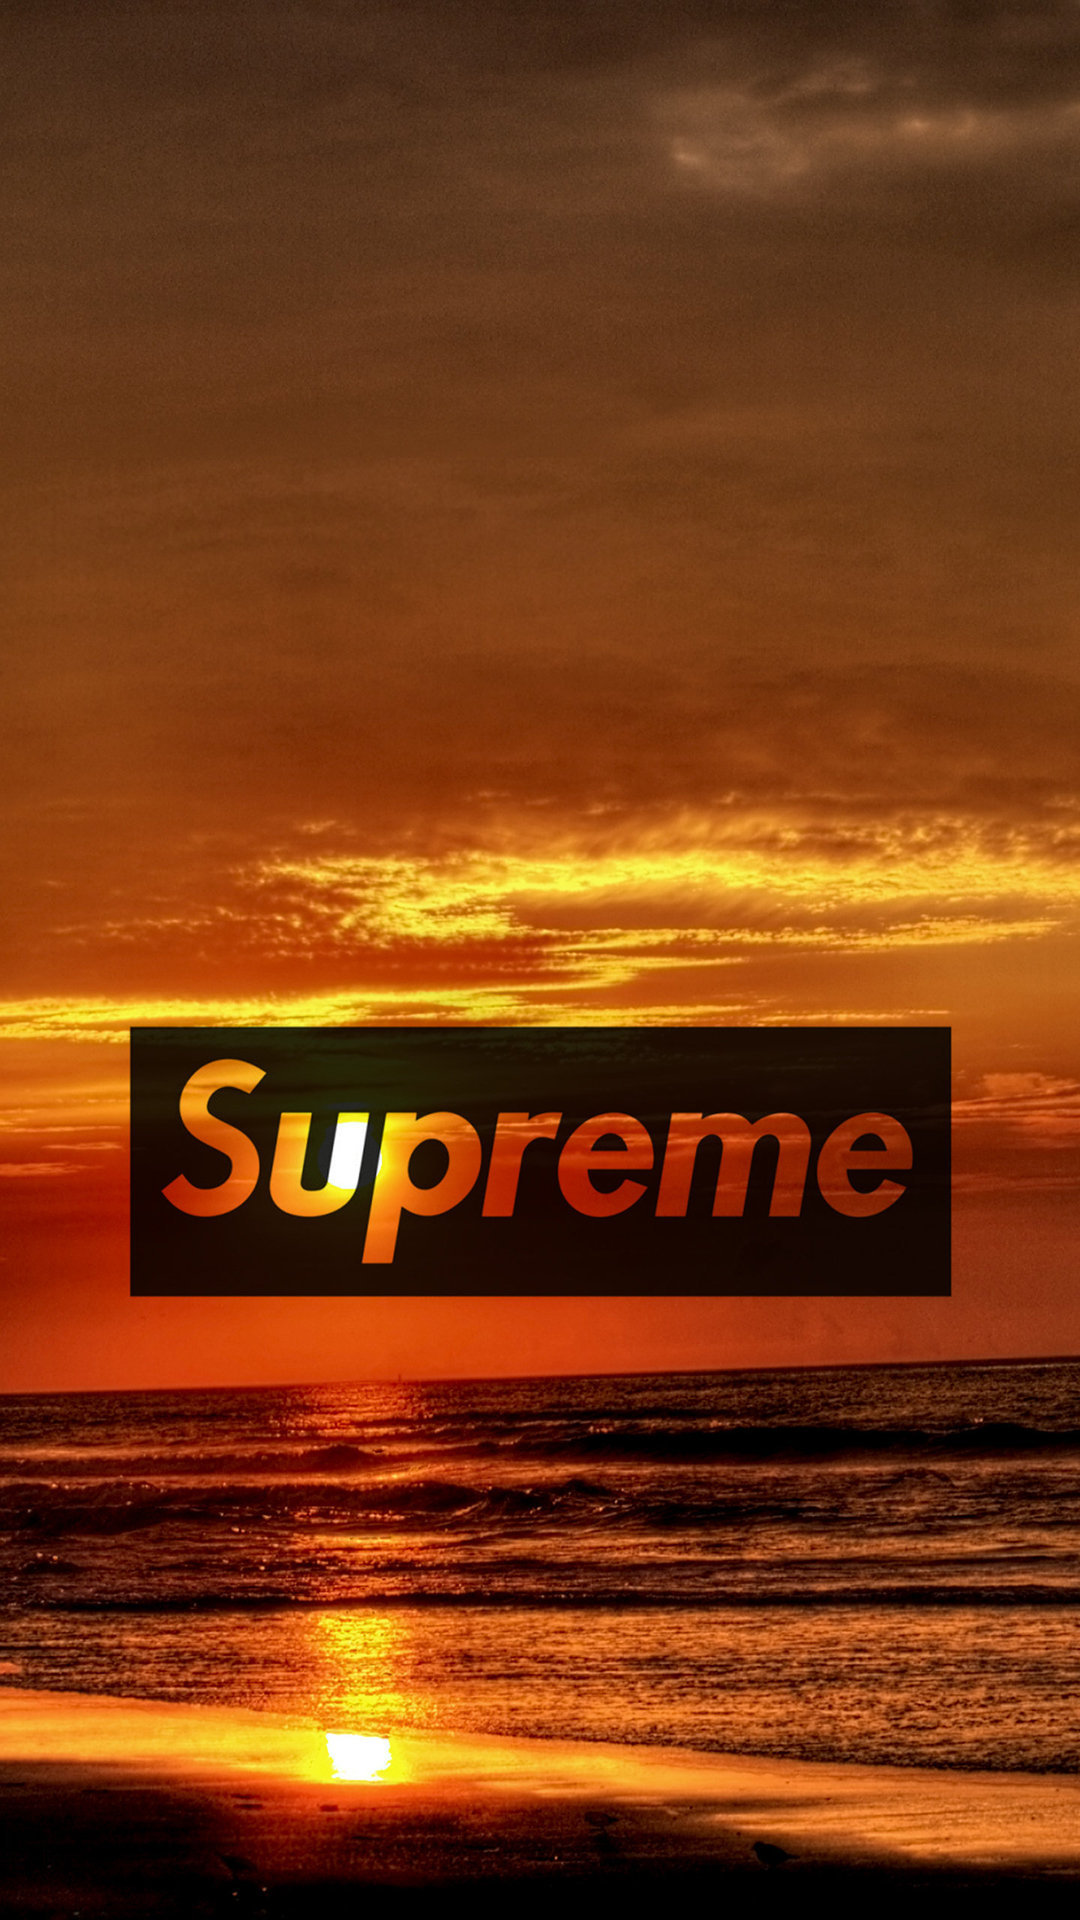 Supreme Sunset Wallpaper   AuthenticSupremecom 1080x1920